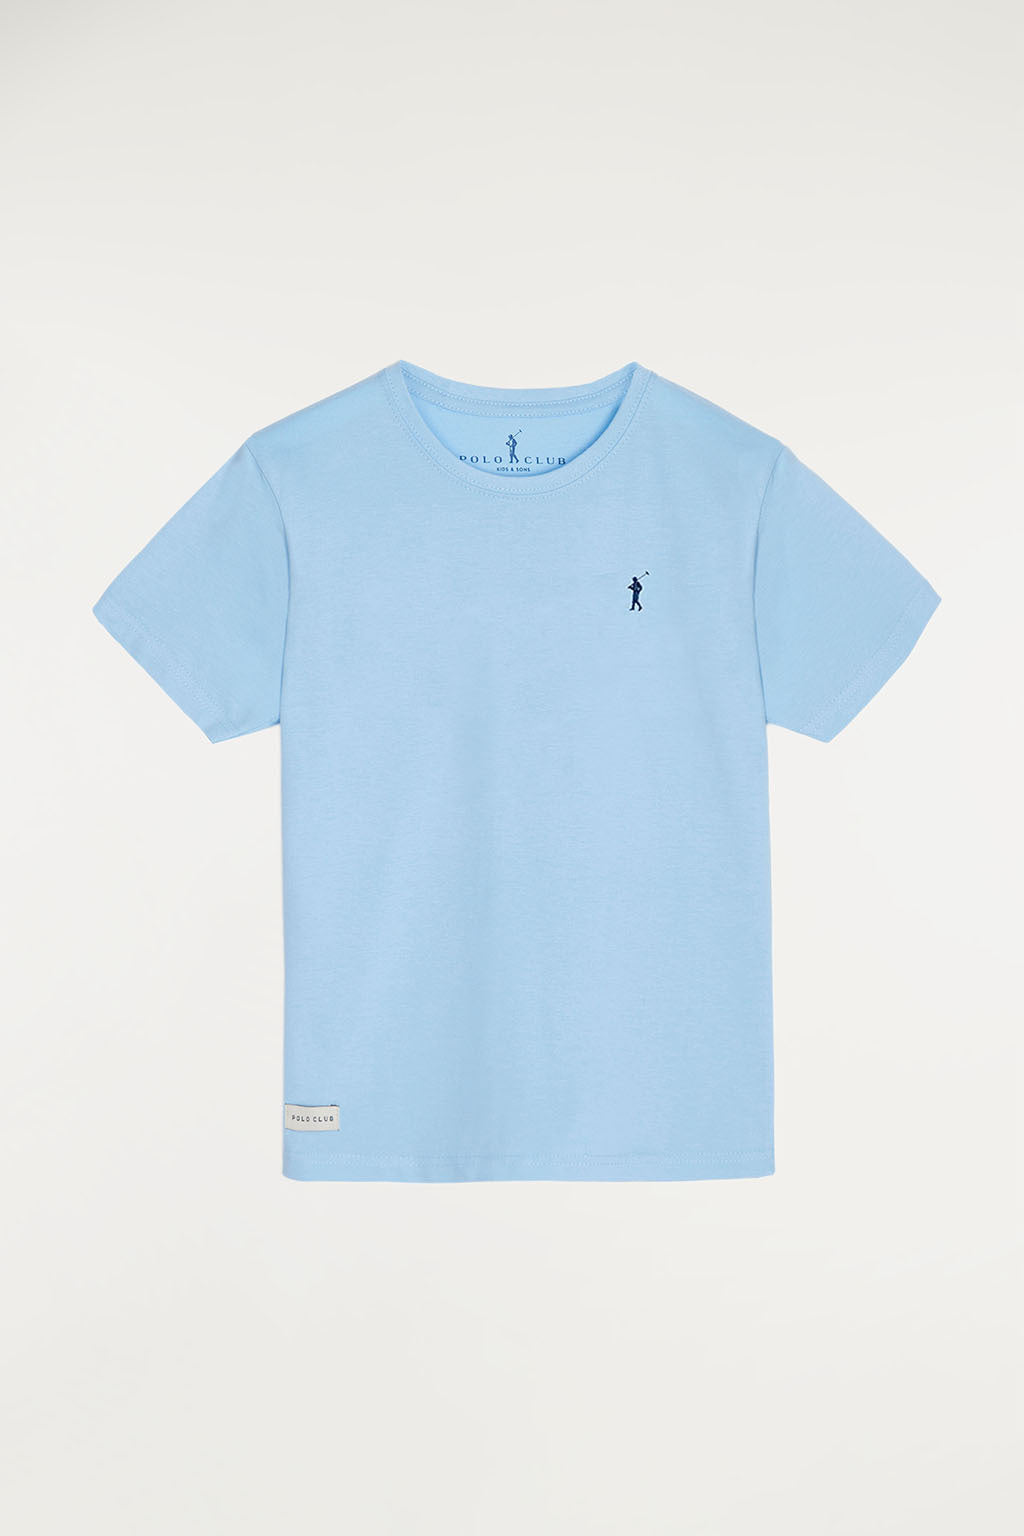 Sky blue tee with small embroidered logo